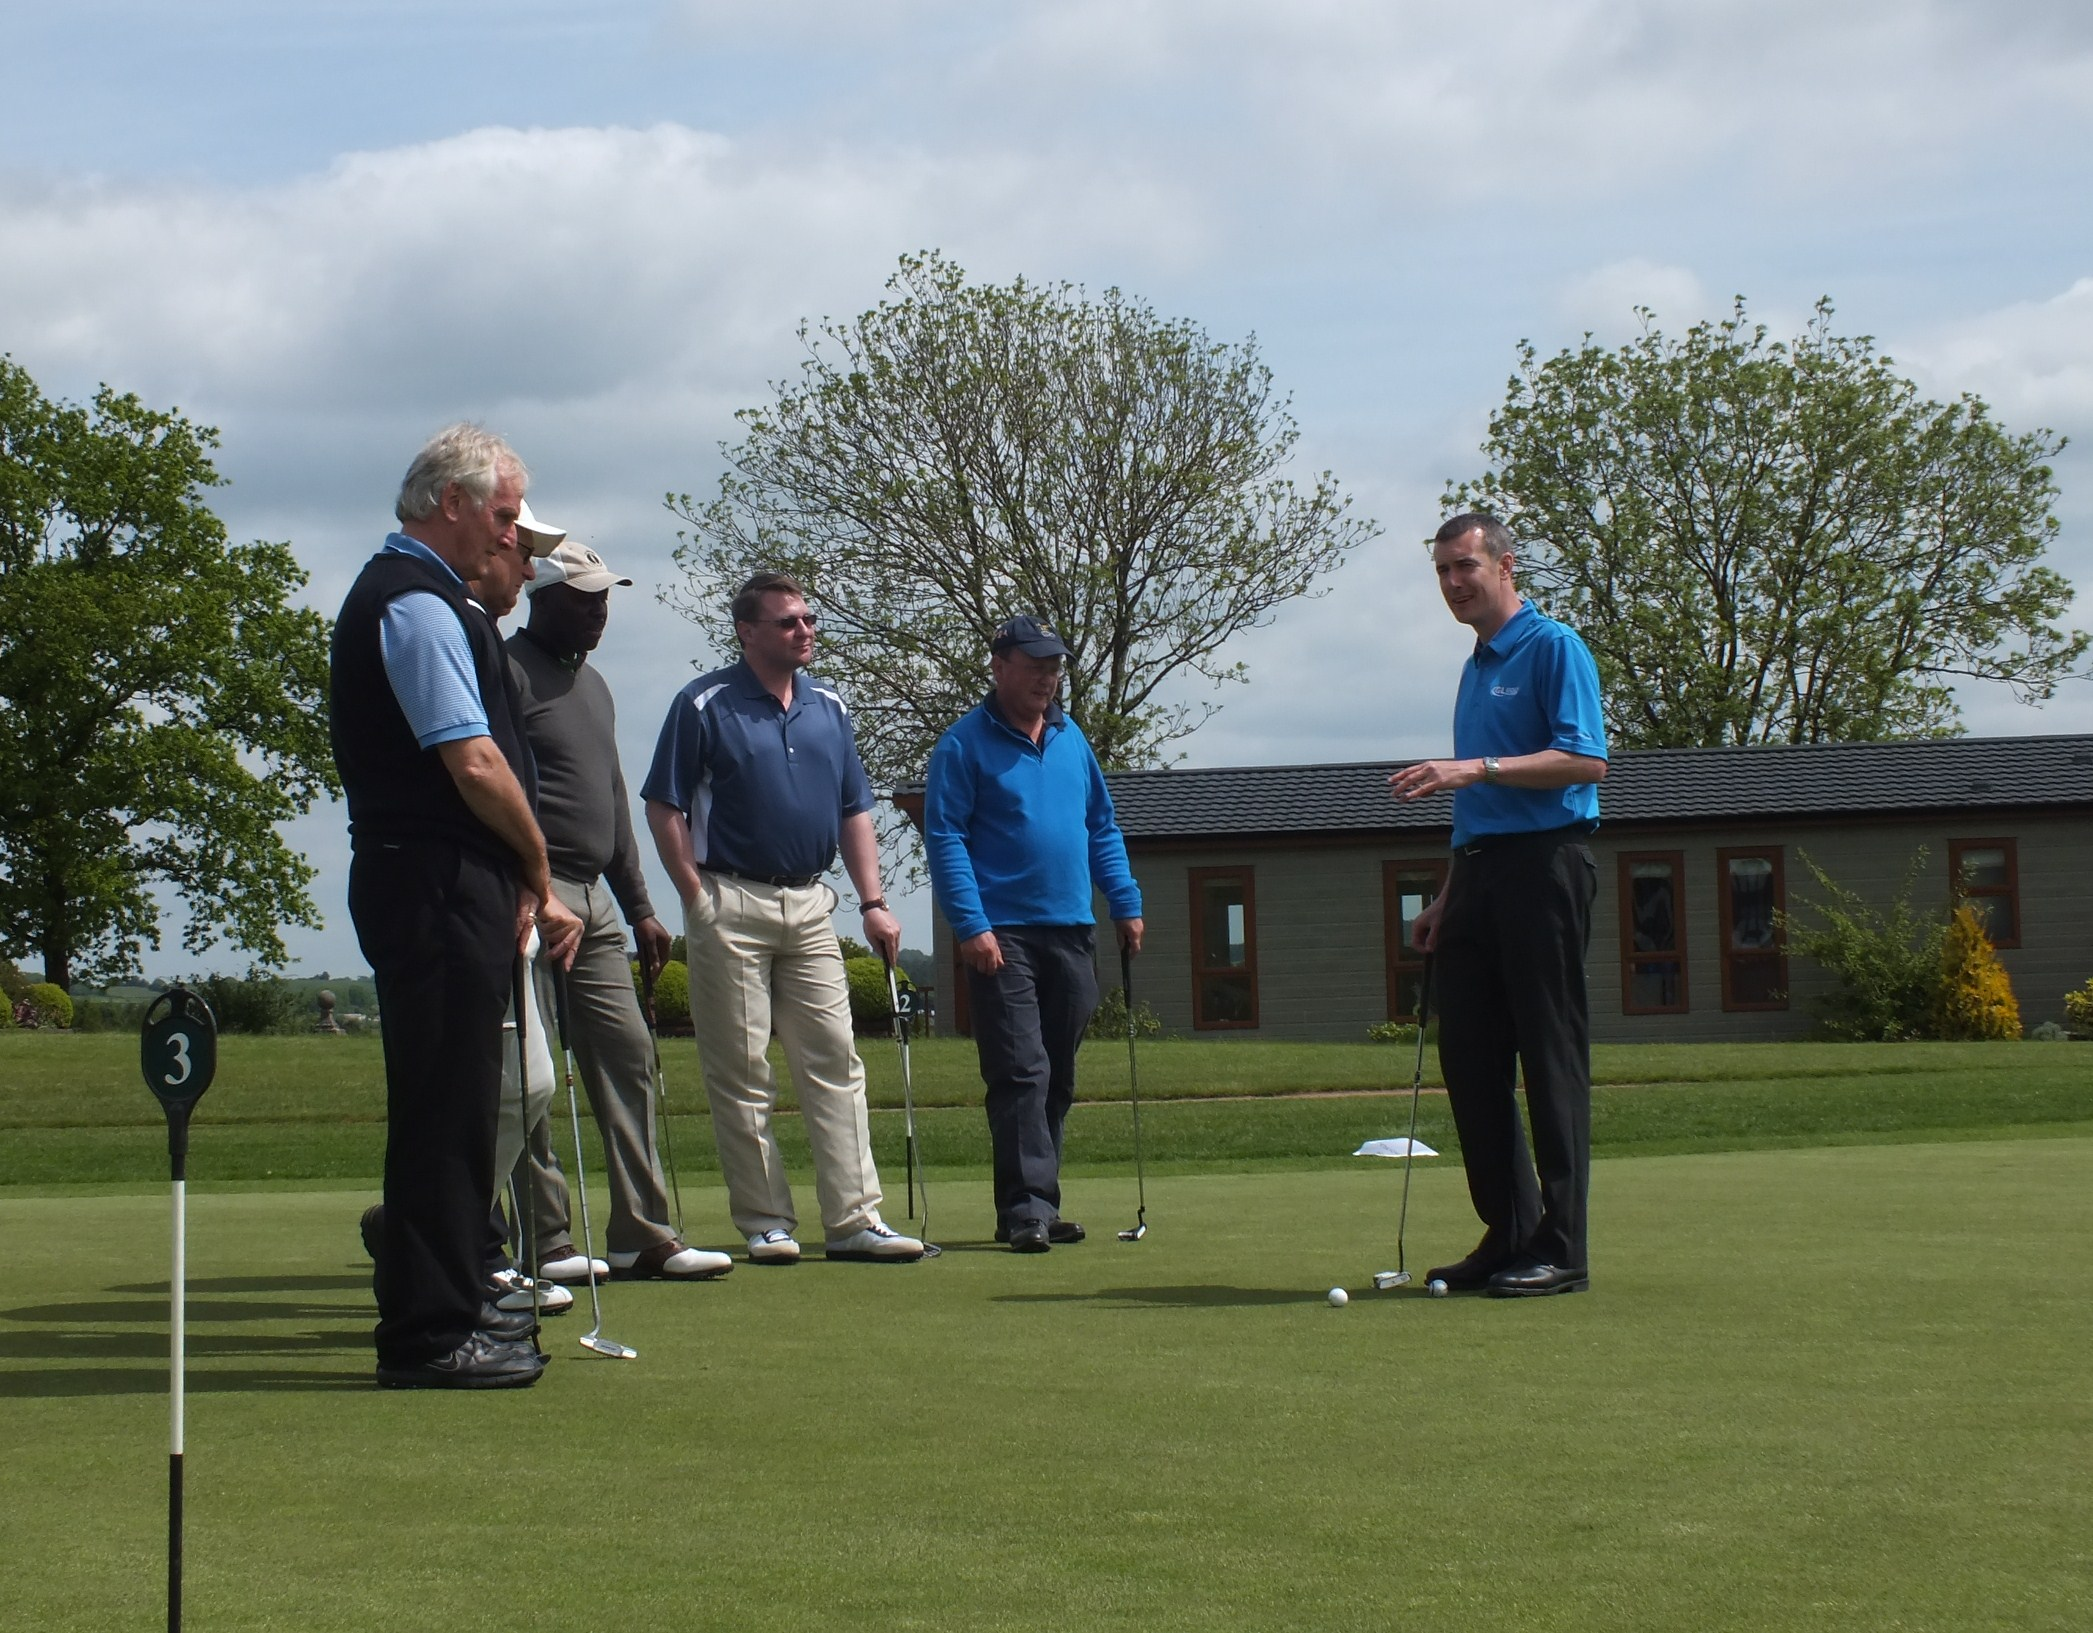 Coaching available at Astbury Hall